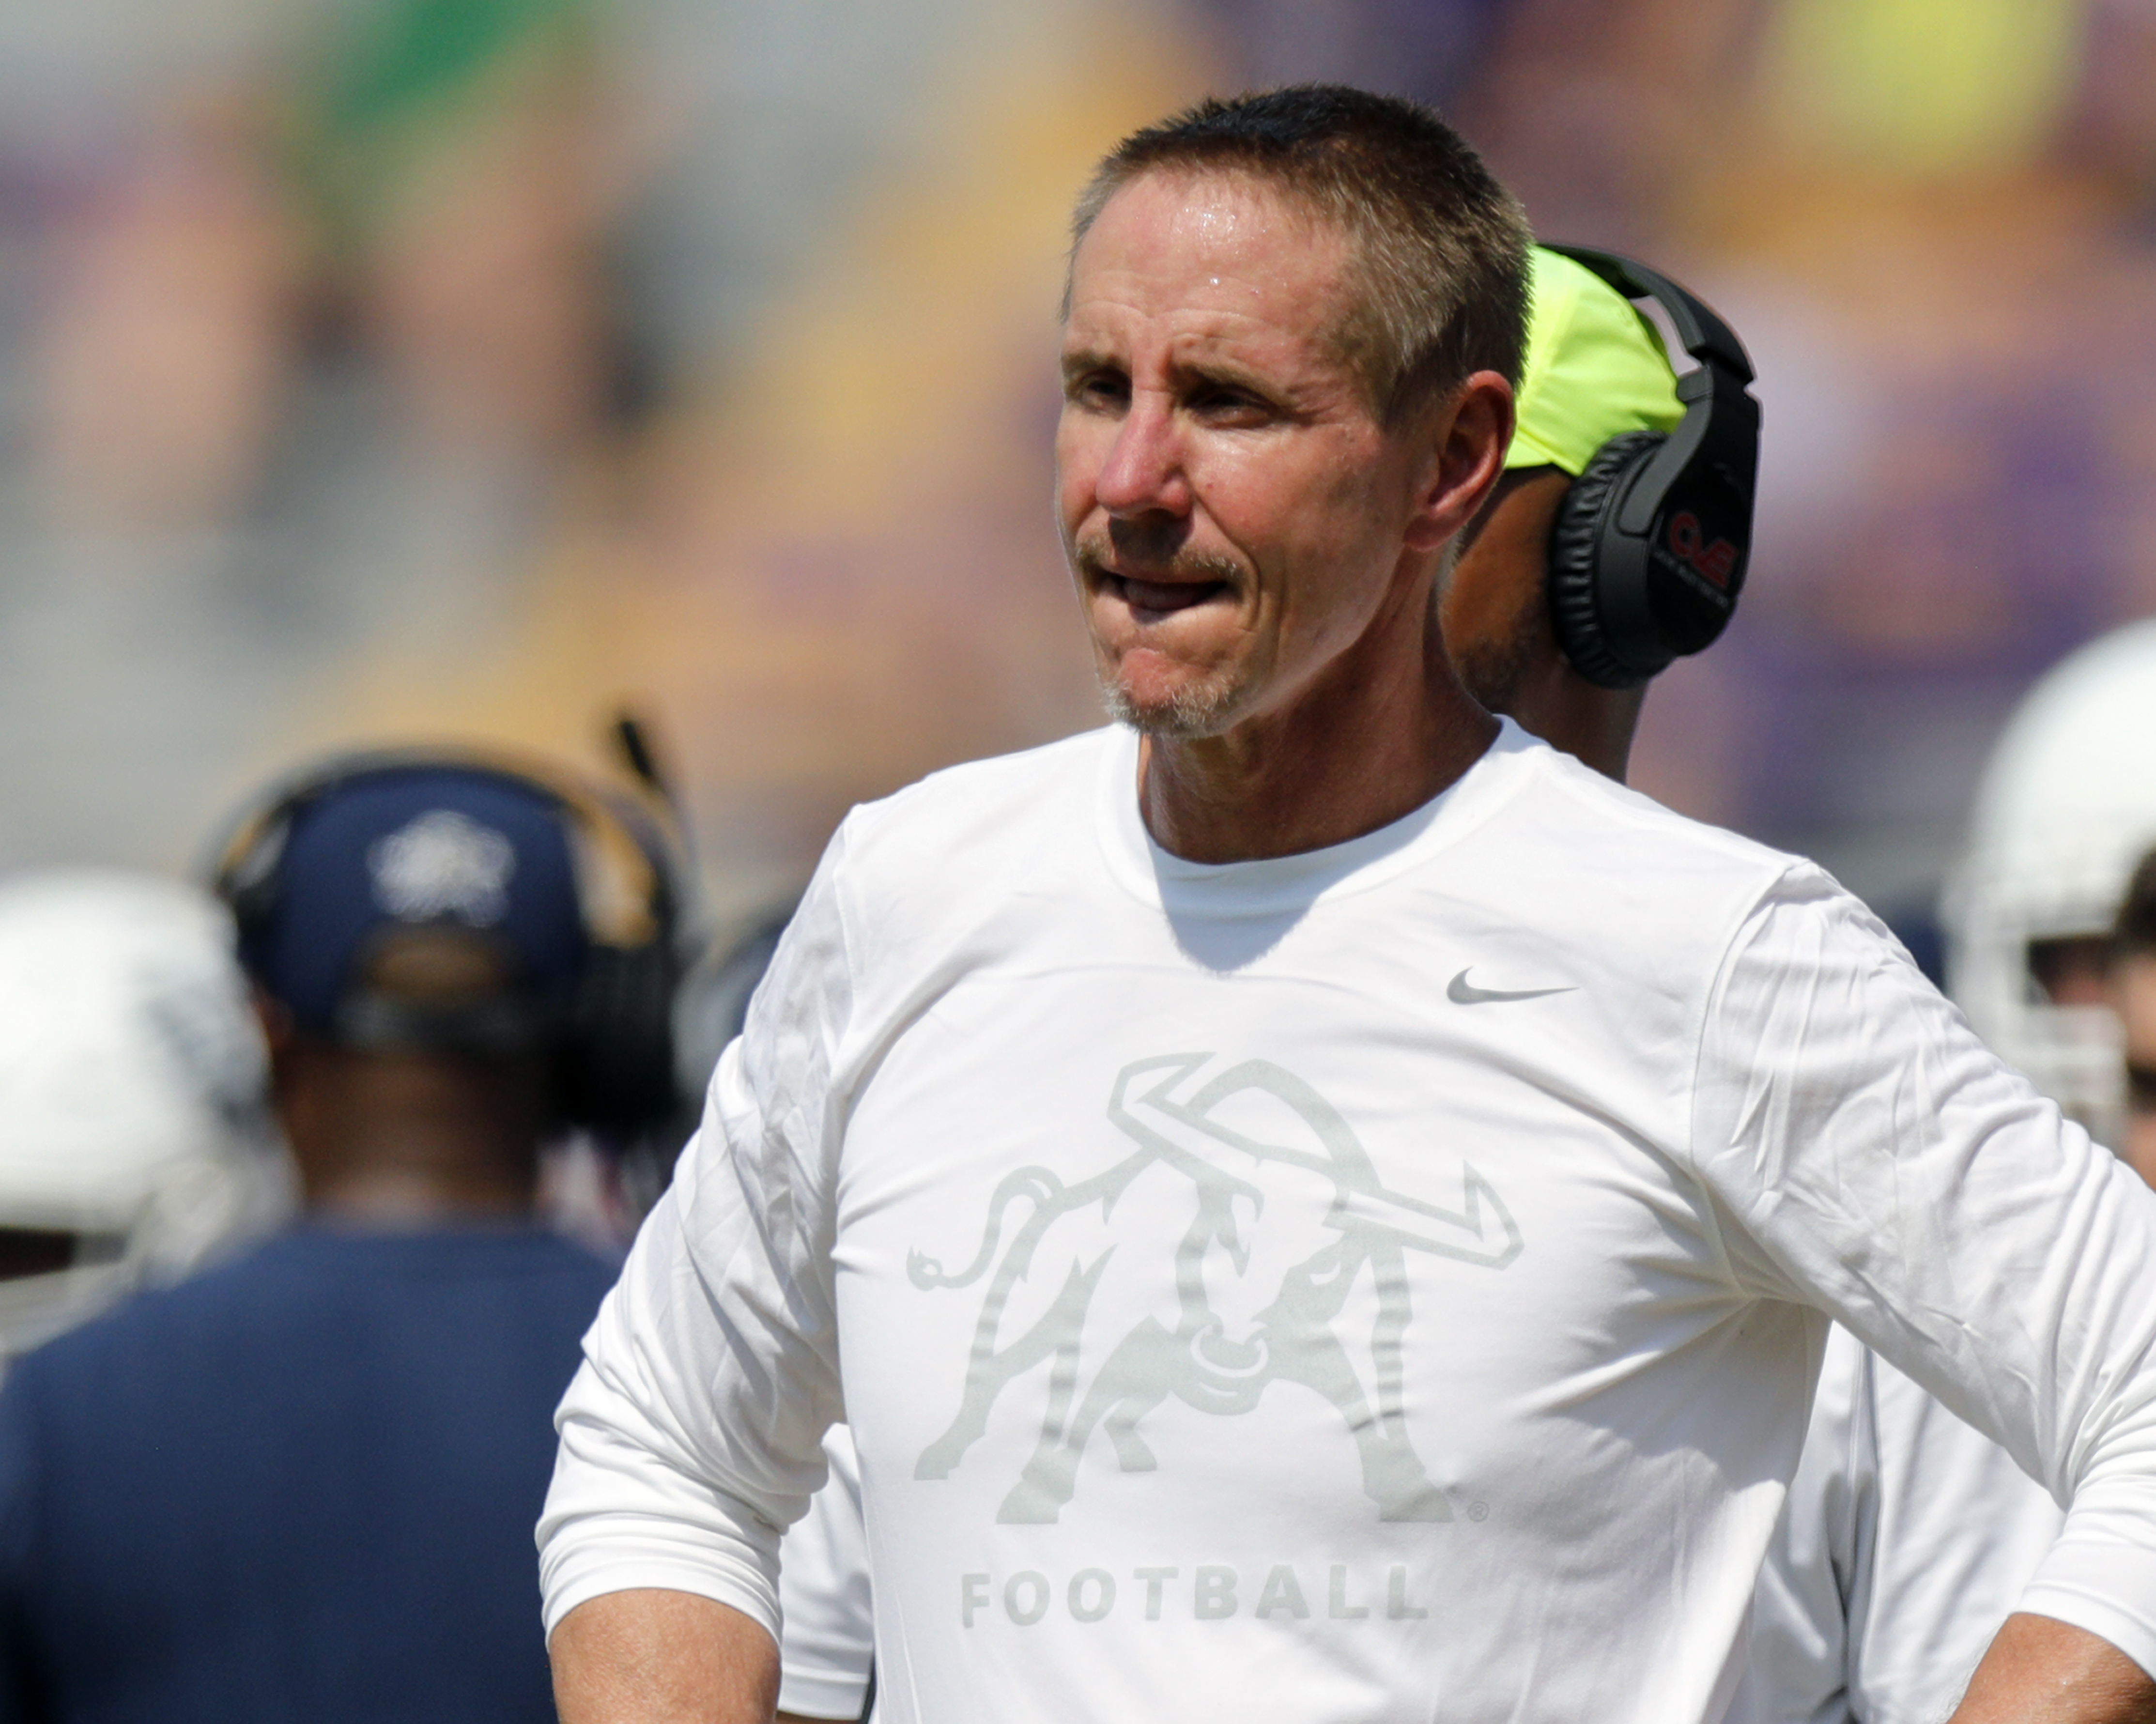 Utah State Football Coach Just Made a Big Mistake With His Opt-Out Comments